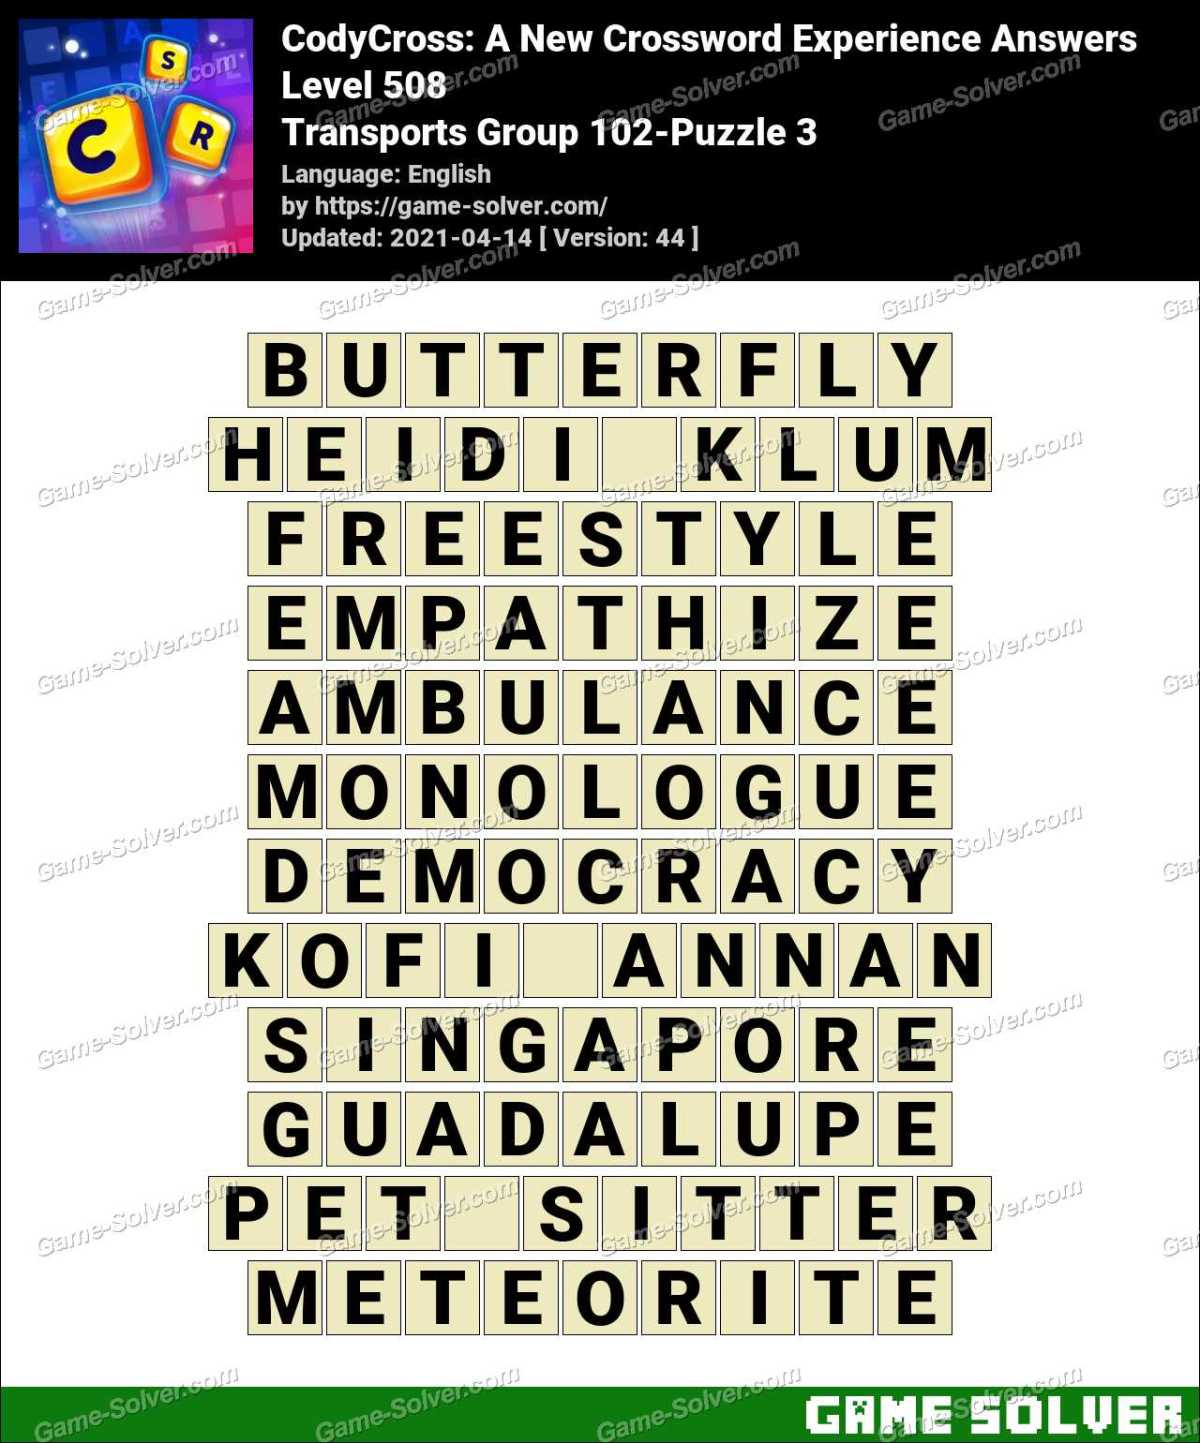 CodyCross Transports Group 102-Puzzle 3 Answers